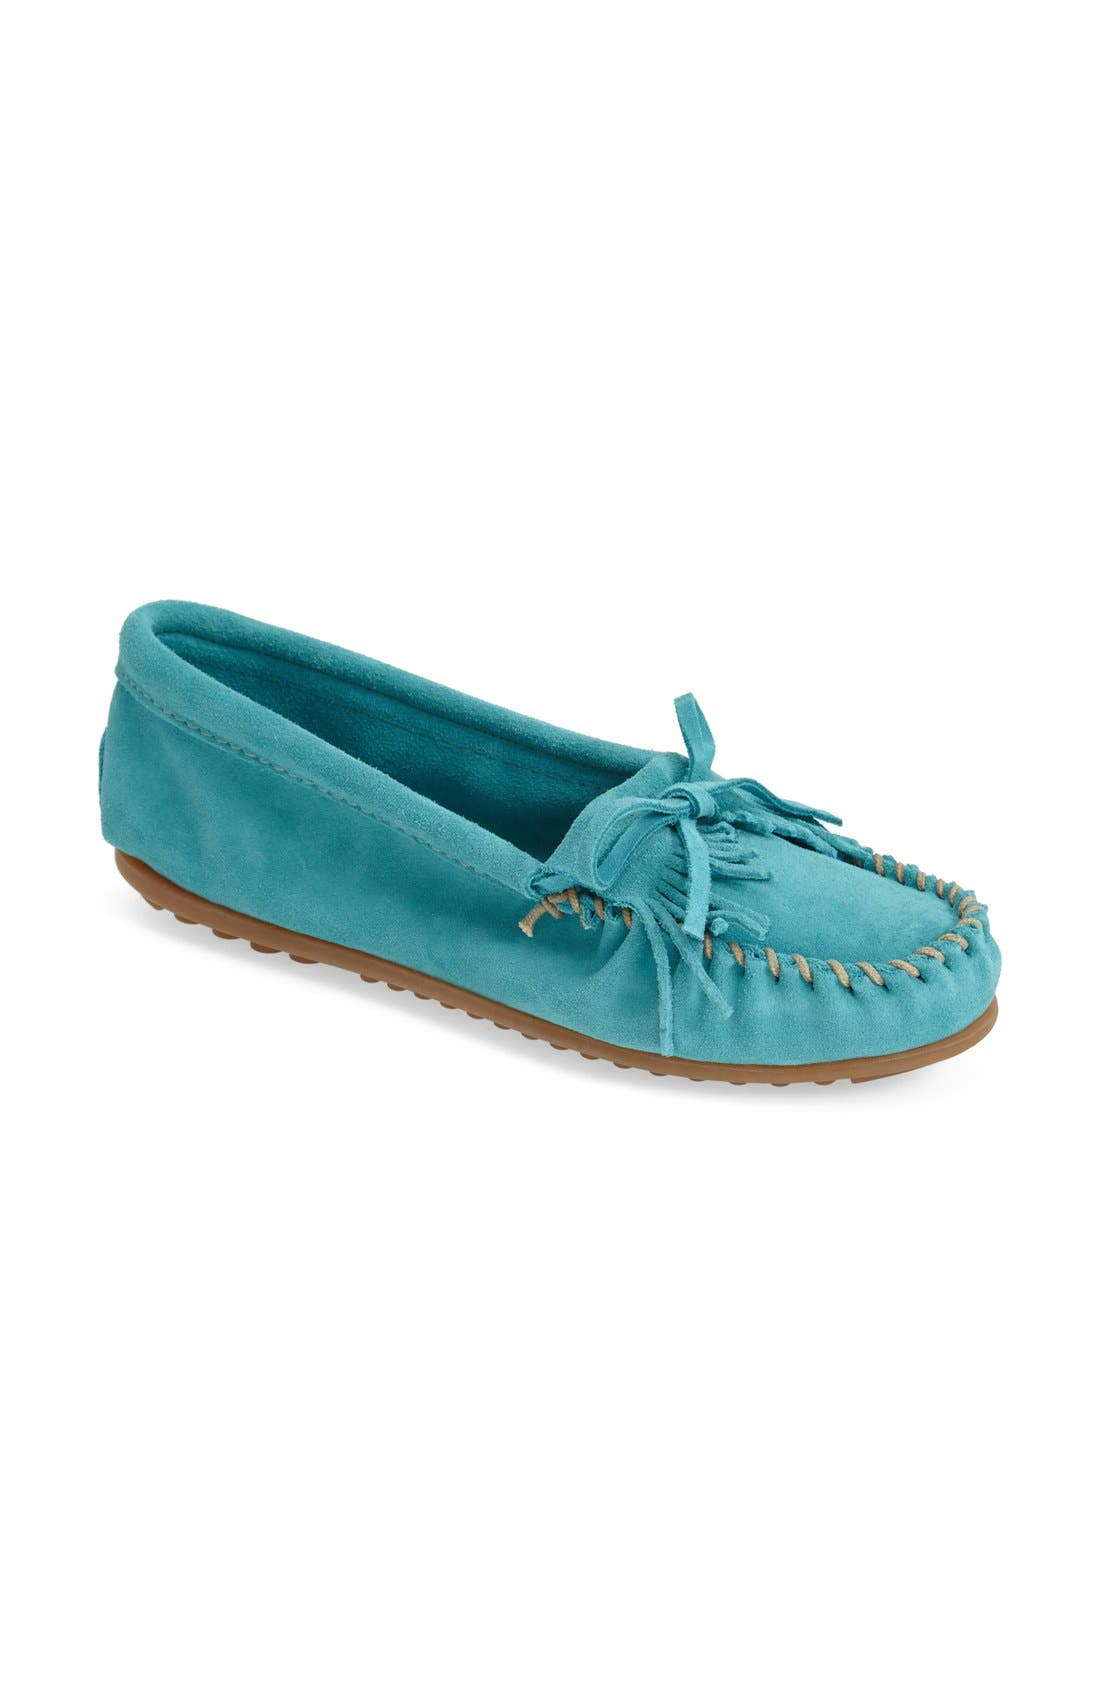 MINNETONKA, 'Kilty' Suede Moccasin, Alternate thumbnail 2, color, TURQUOISE